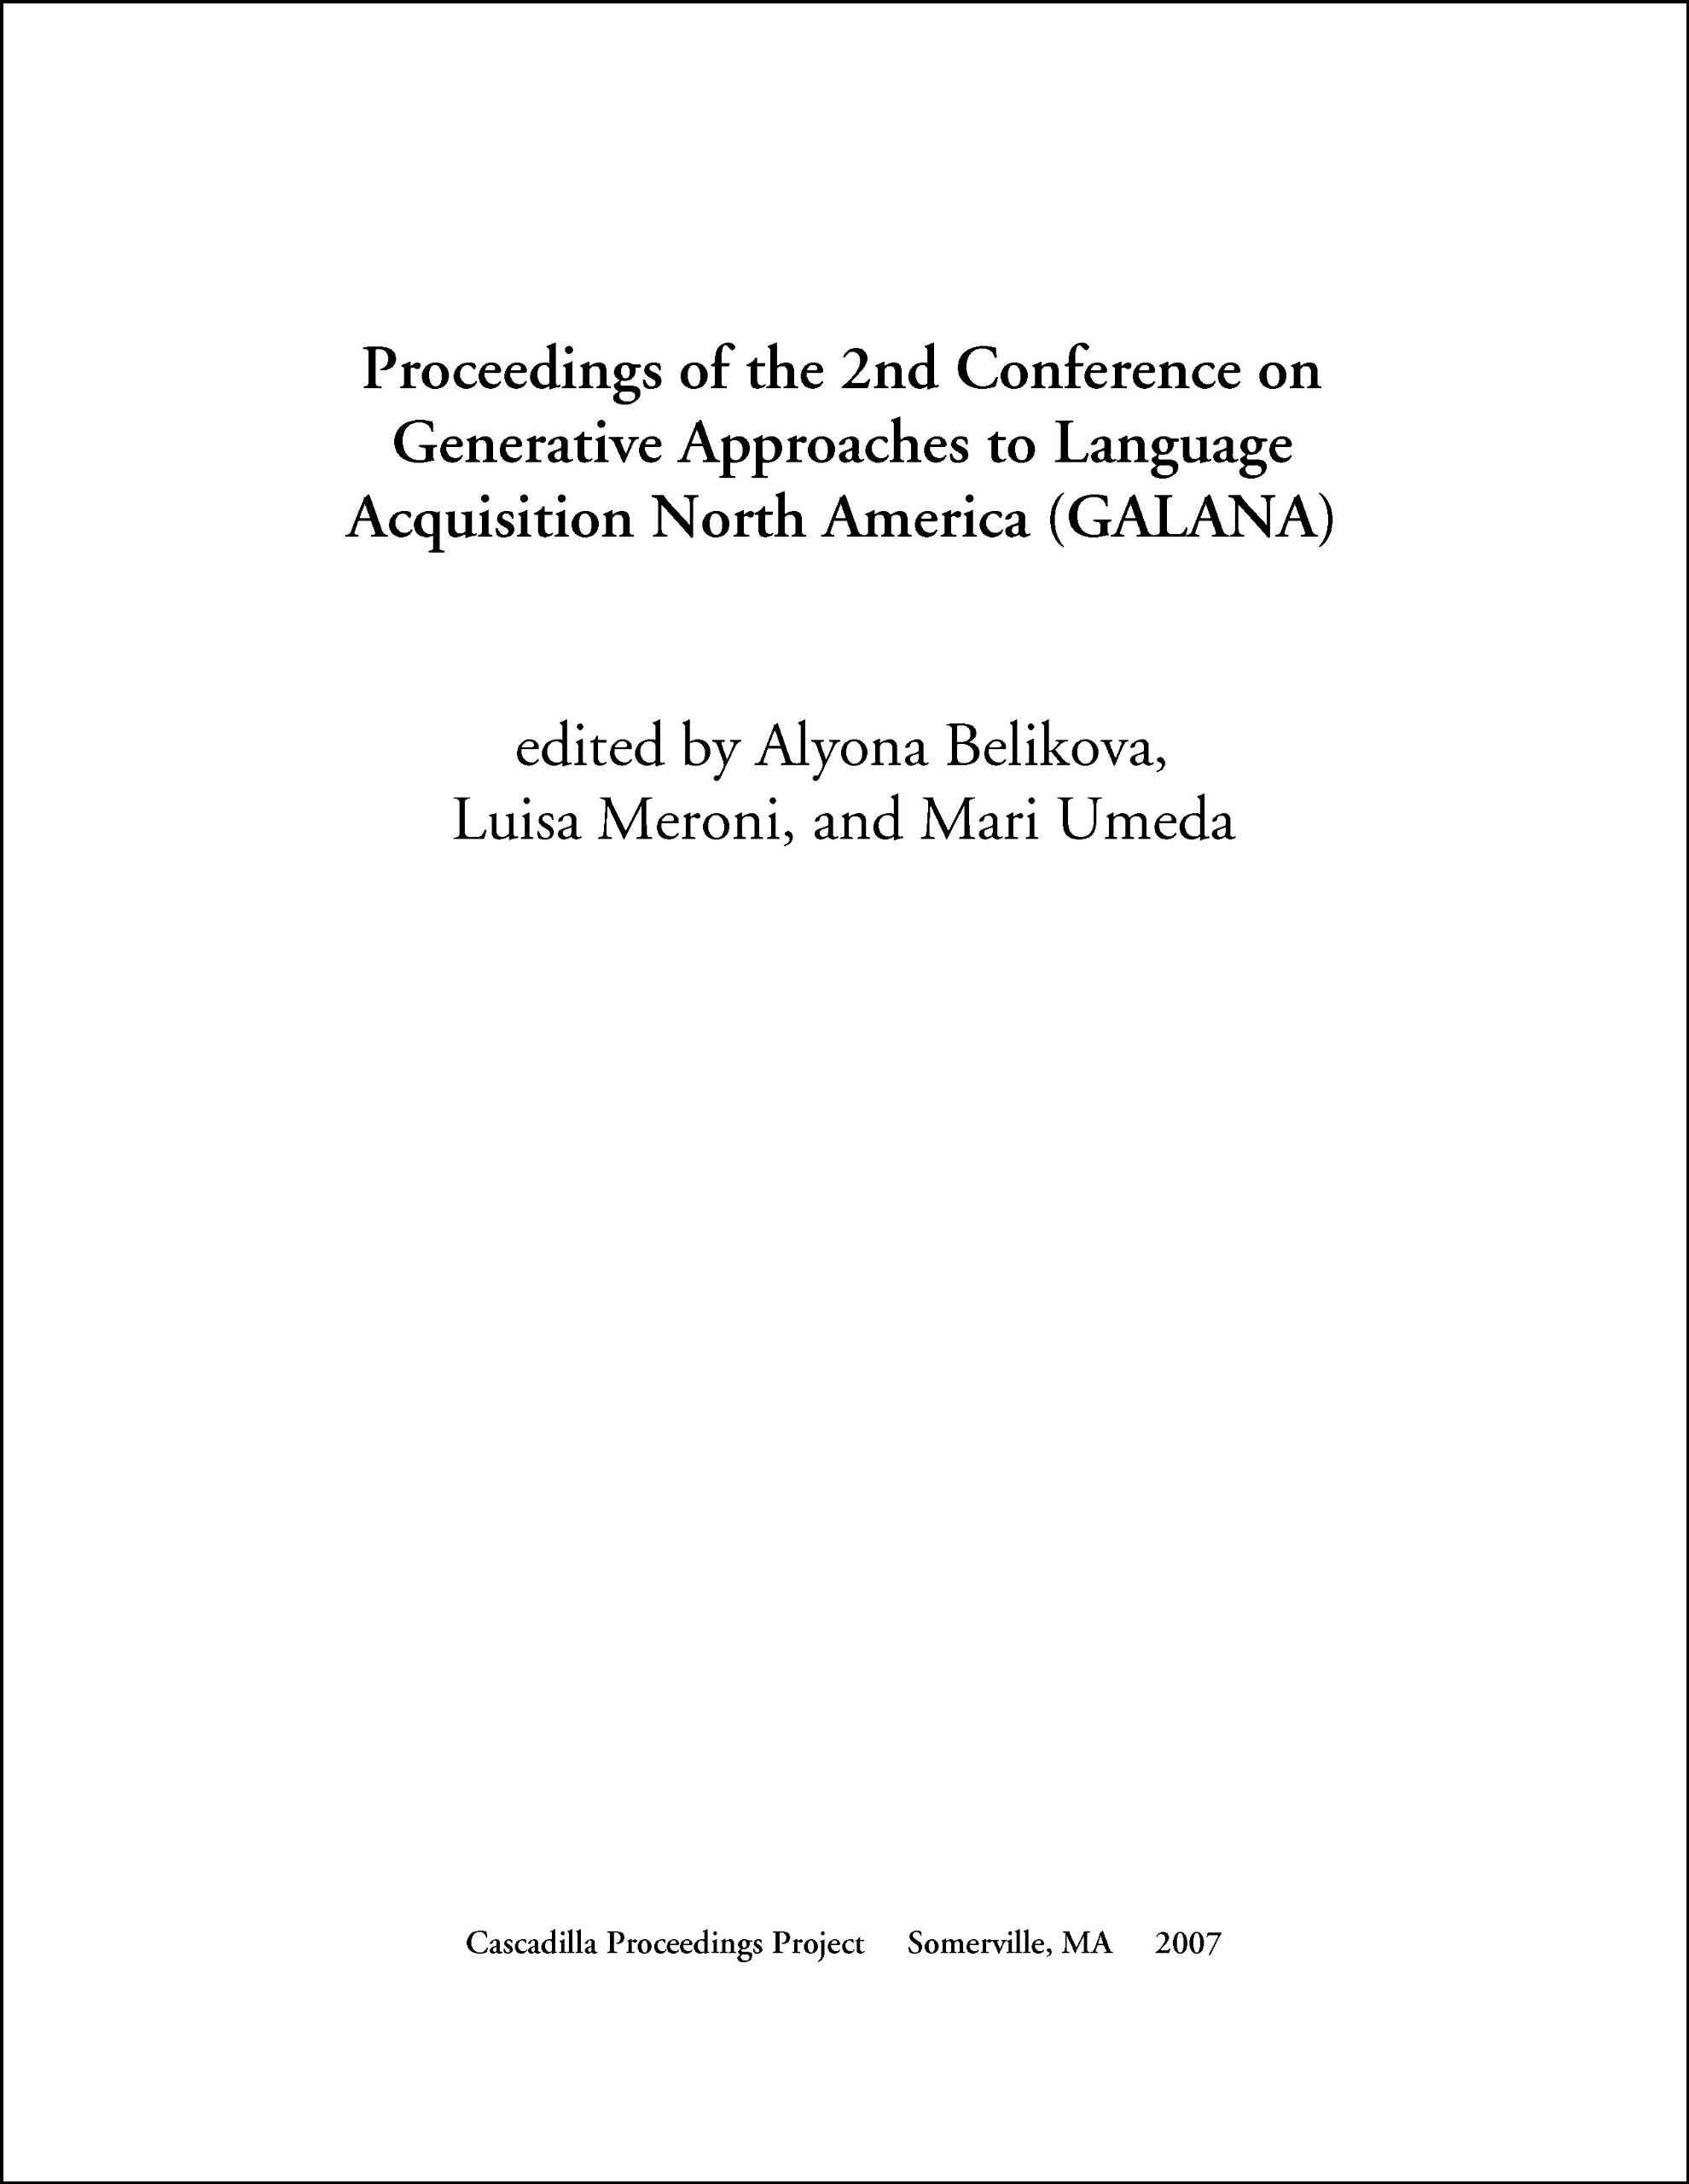 Proceedings of the 2nd Conference on Generative Approaches to Language Acquisition North America (GALANA) pdf